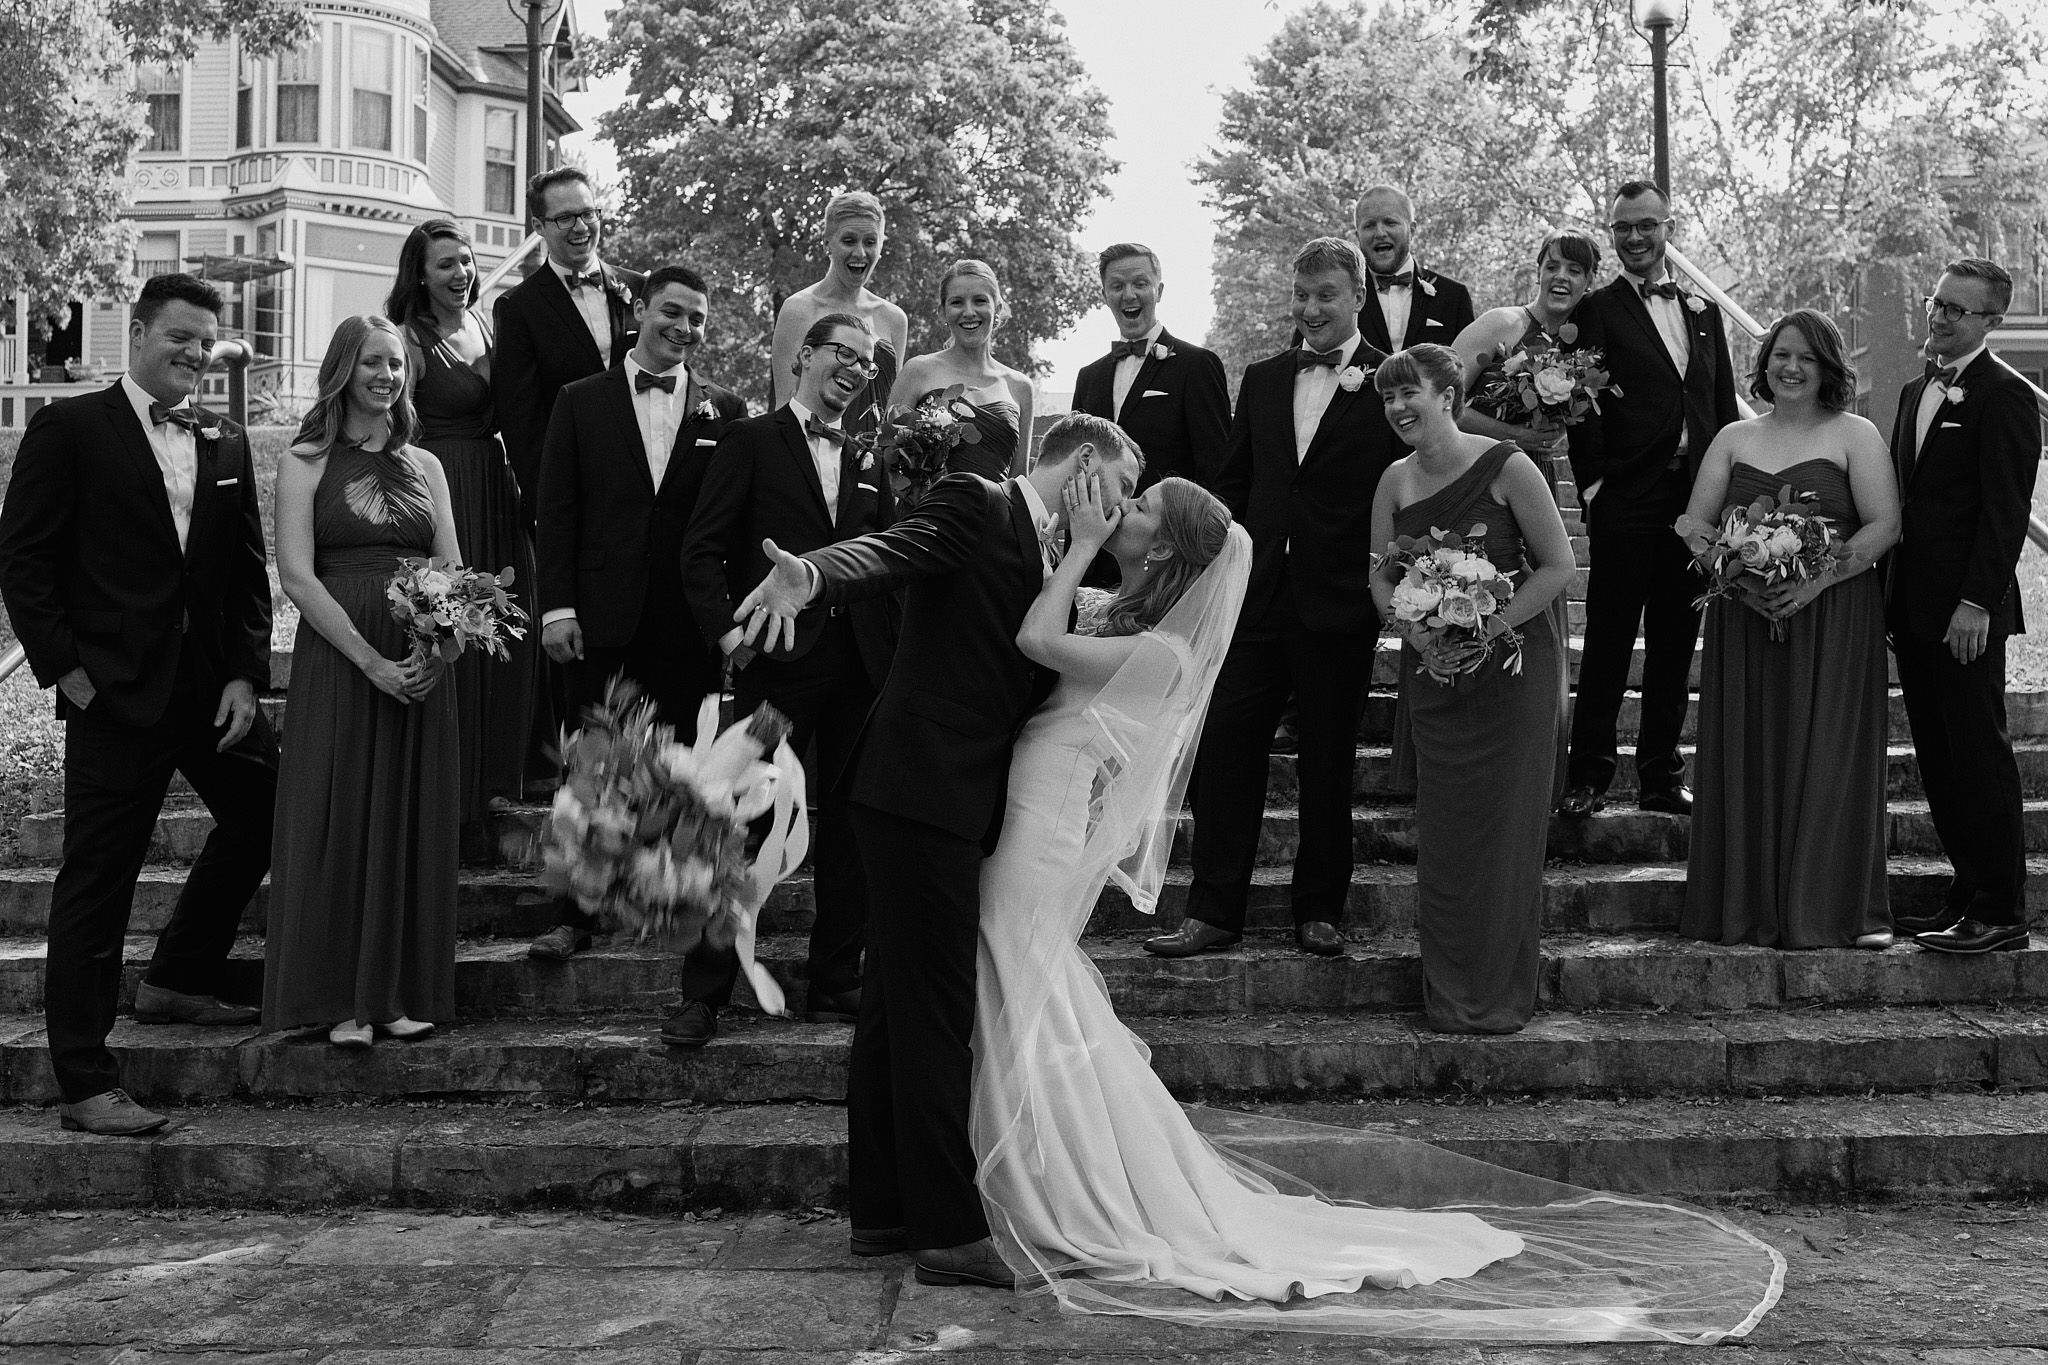 Late-Fall_at_Irvine_Park_Wedding_Photography_High_End_Minneapolis_Brand_Photographer_Something_Candid_031.JPG